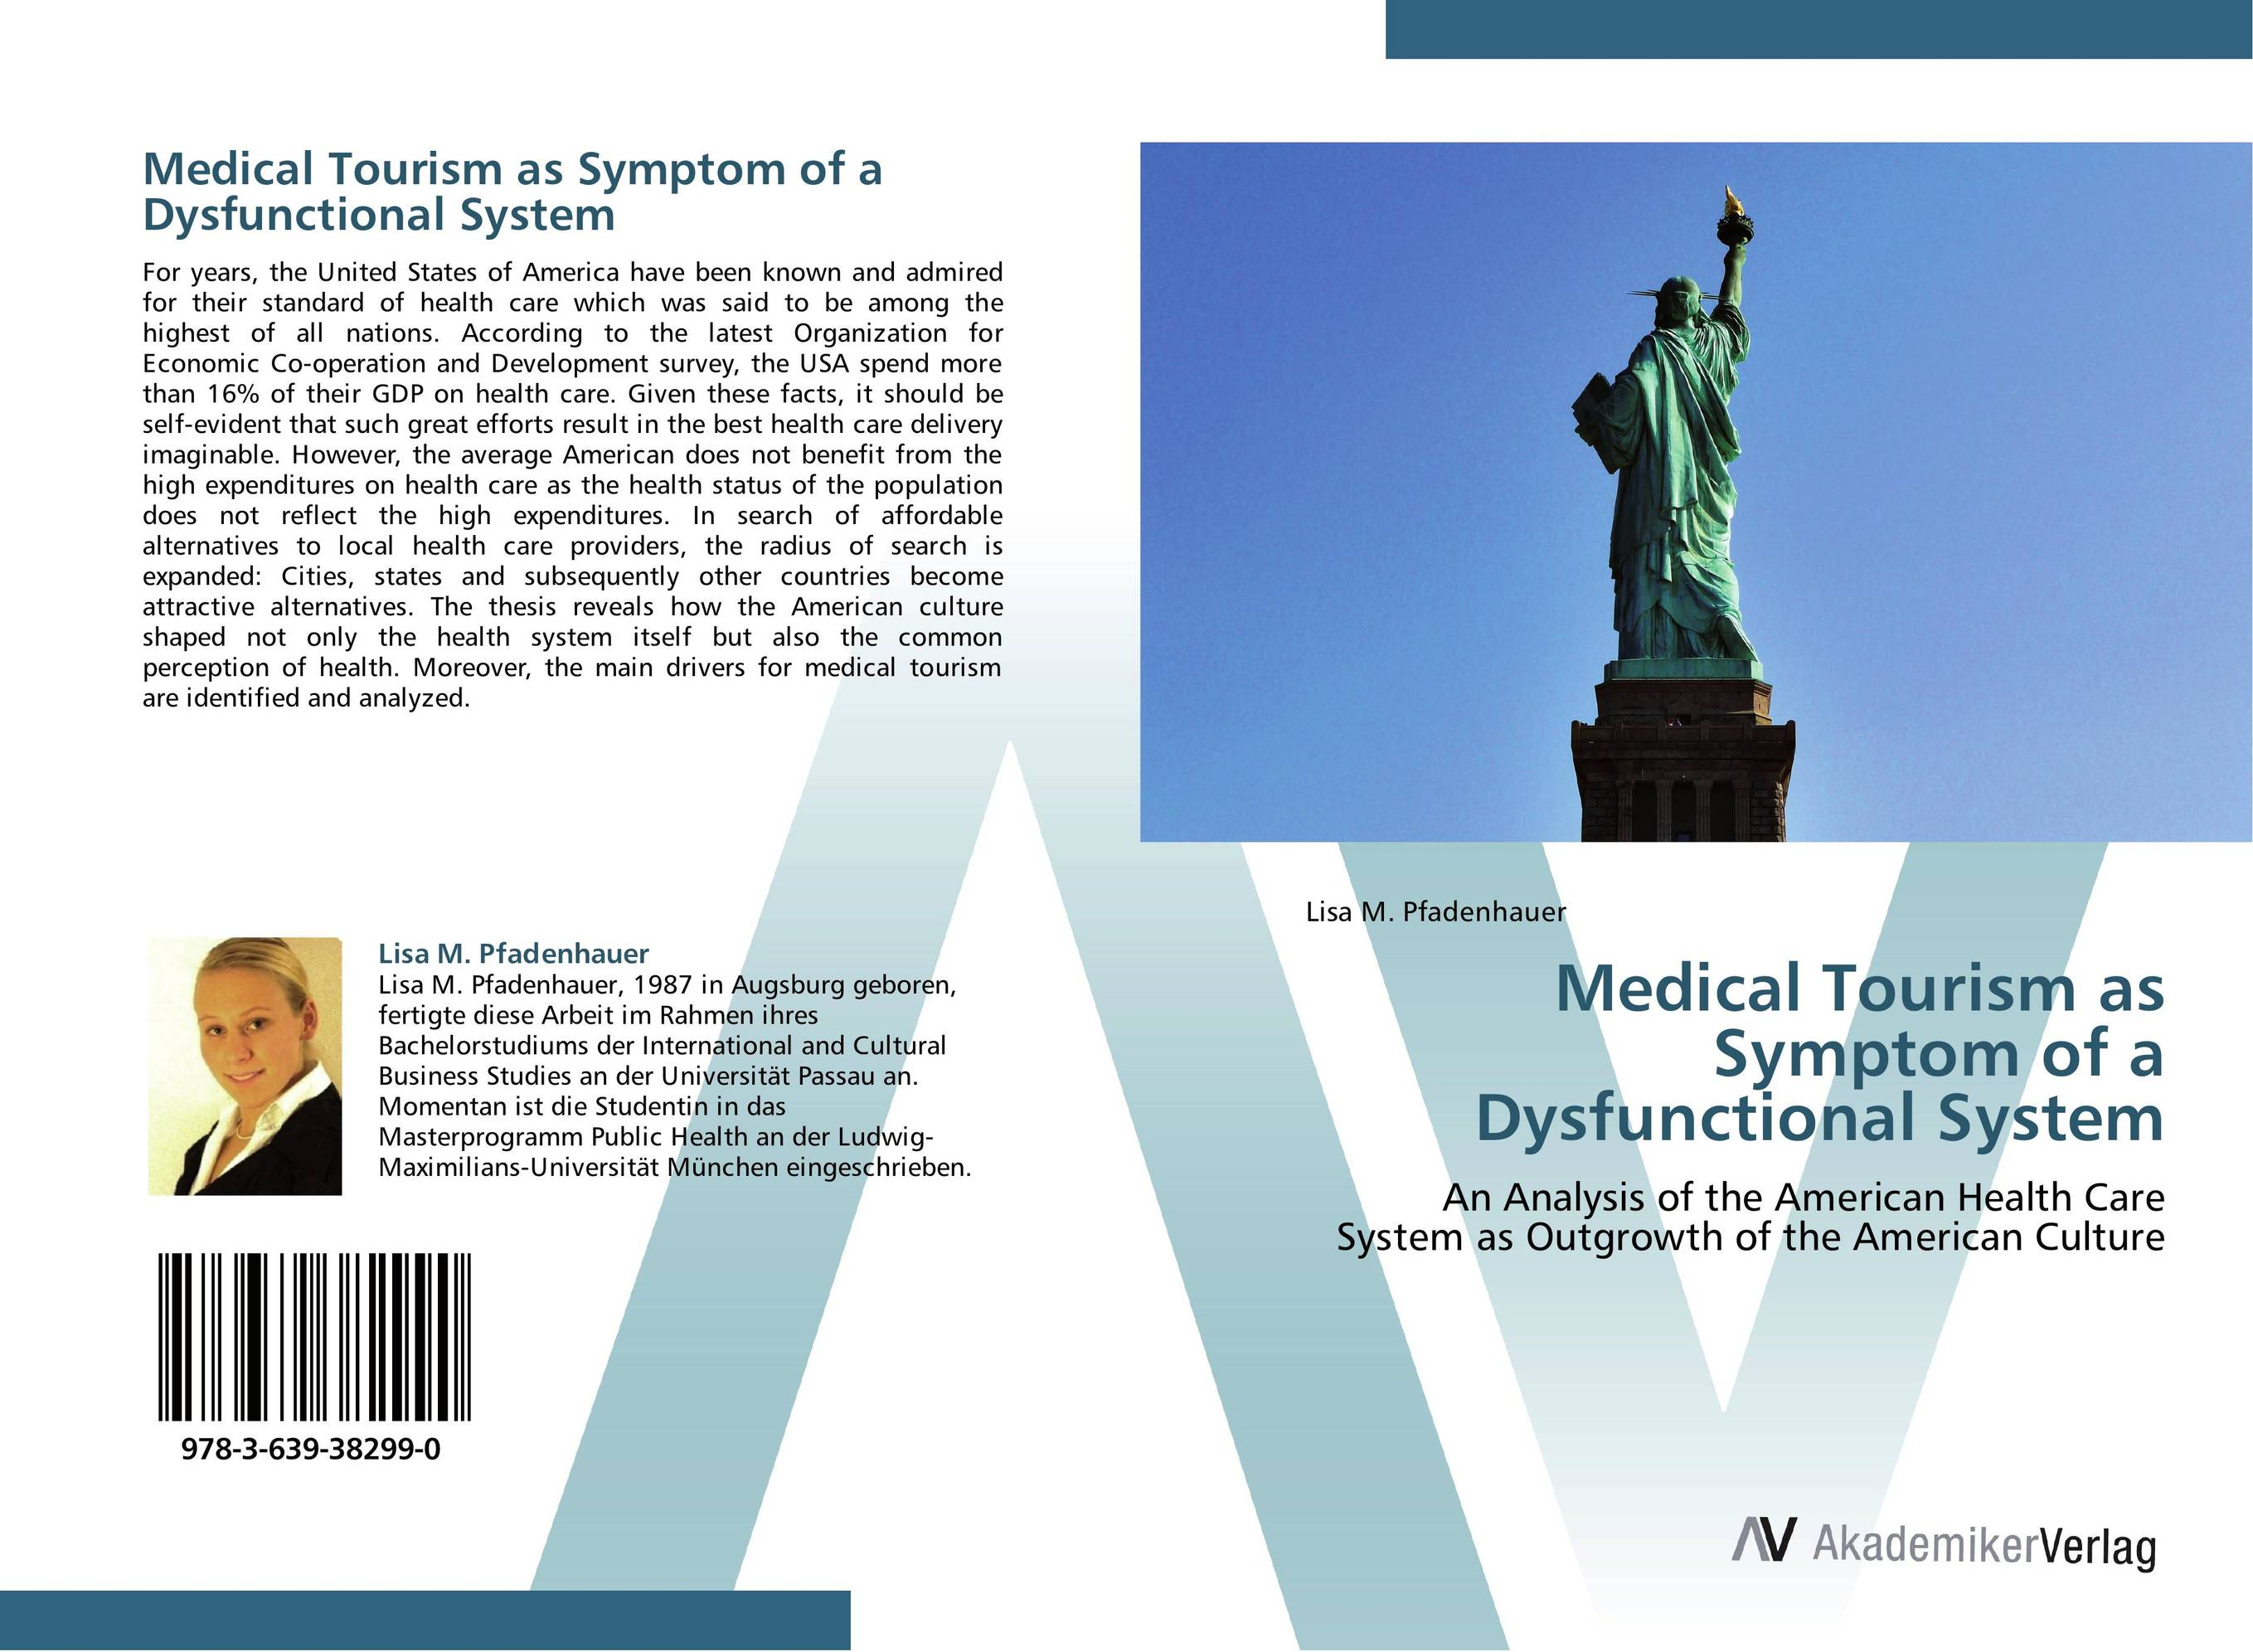 Medical Tourism as Symptom of a Dysfunctional System